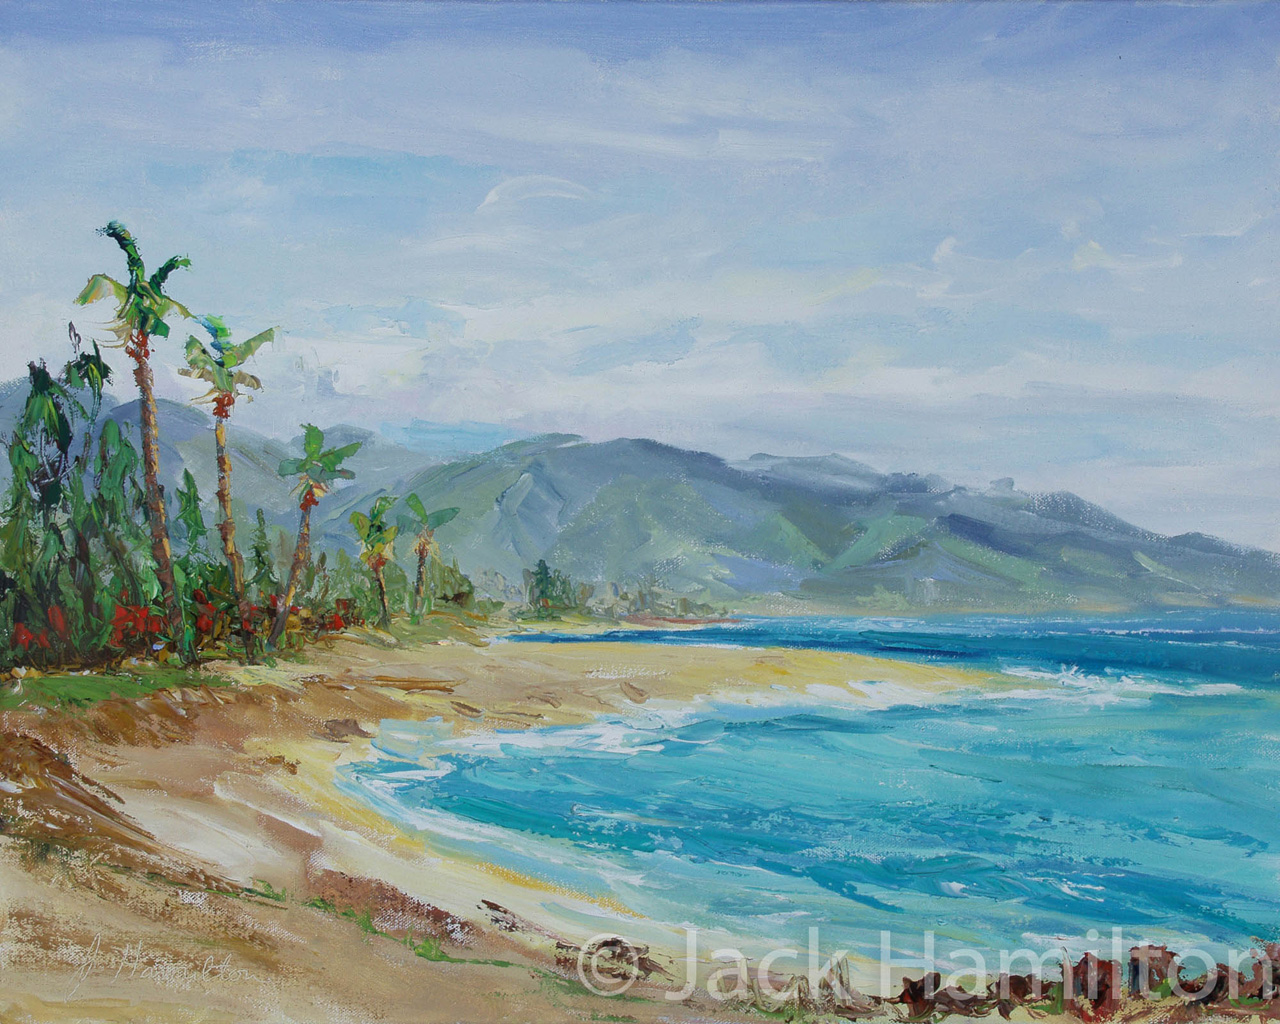 Summer Day At Baldwin Beach by Jack Hamilton oil on canvas